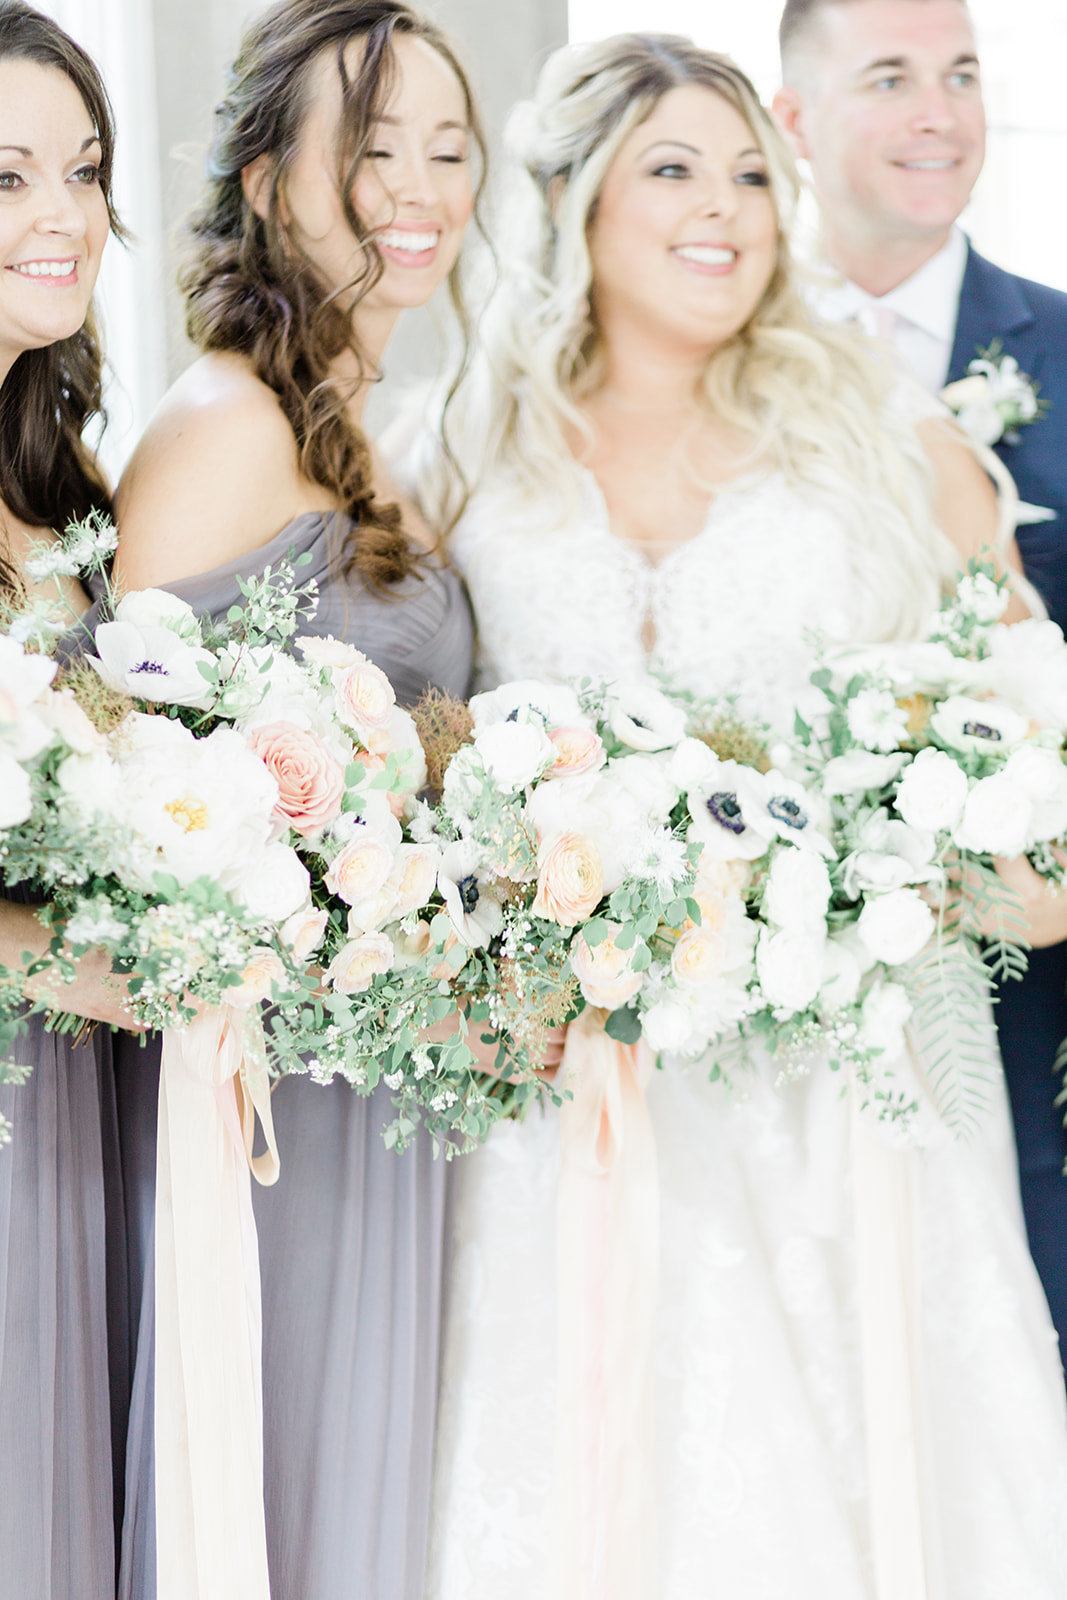 Ashley Link Photography-157